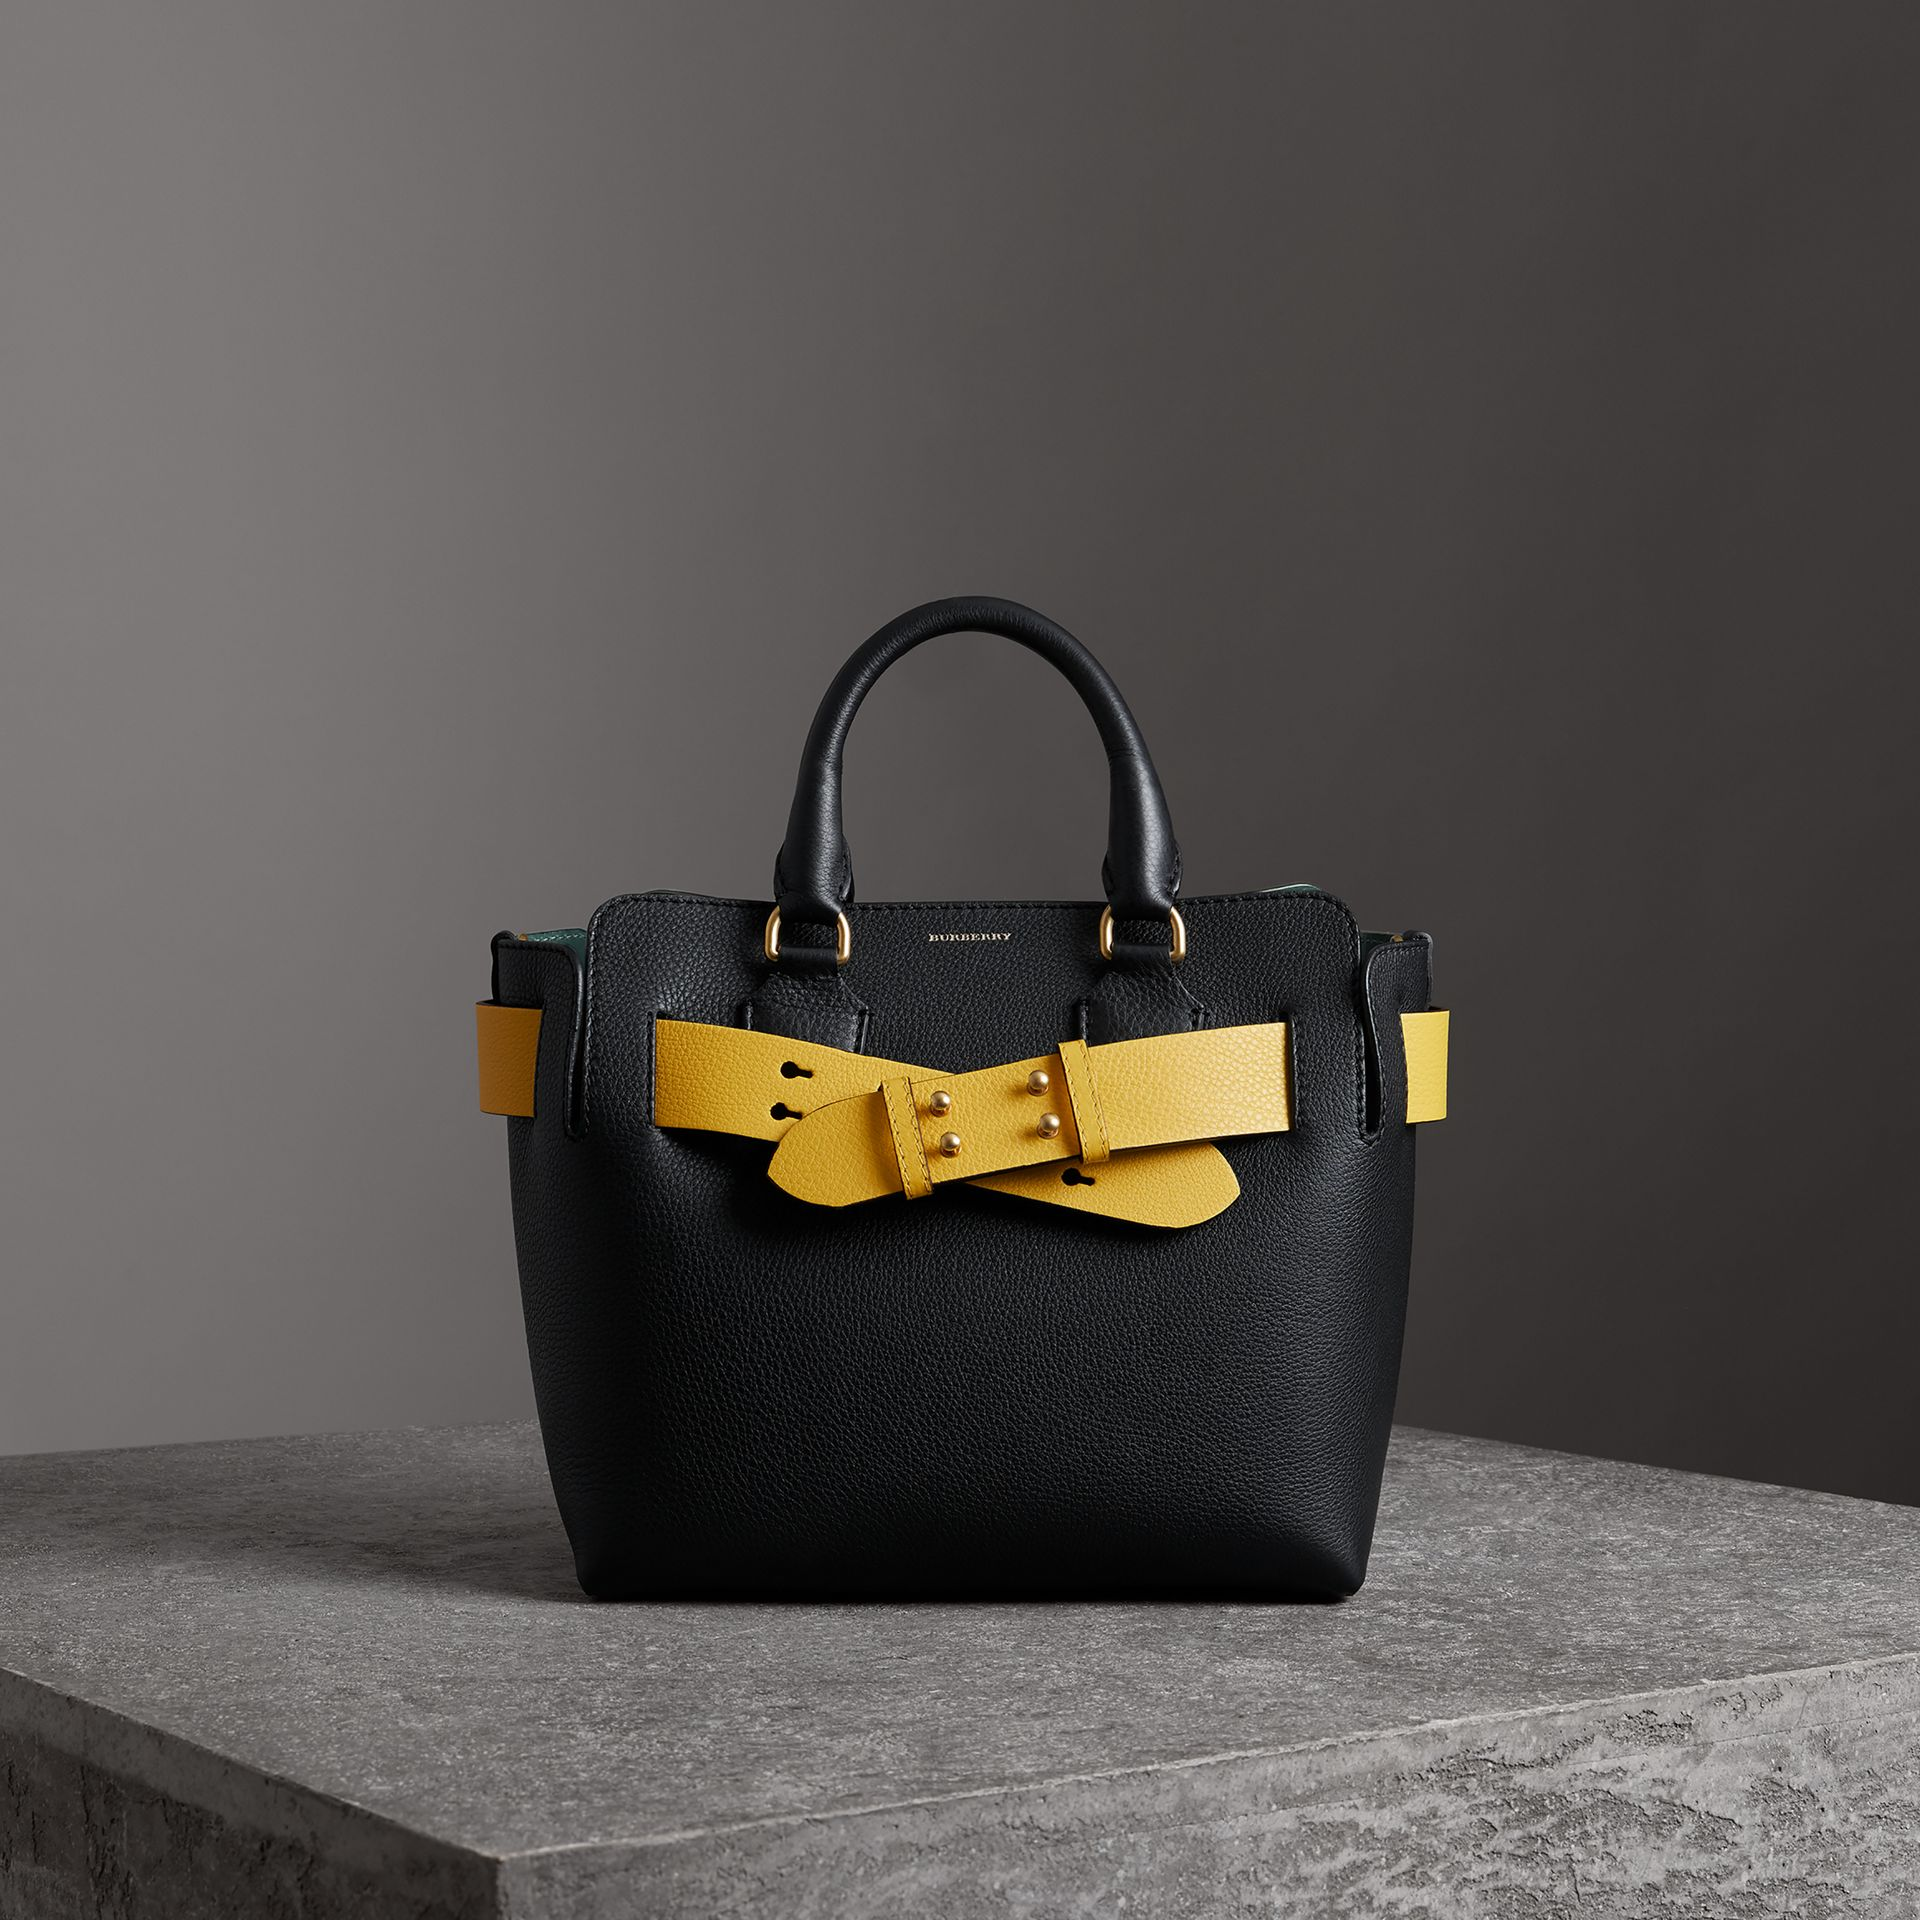 Petit sac The Belt en cuir (Noir/jaune) - Femme | Burberry Canada - photo de la galerie 0